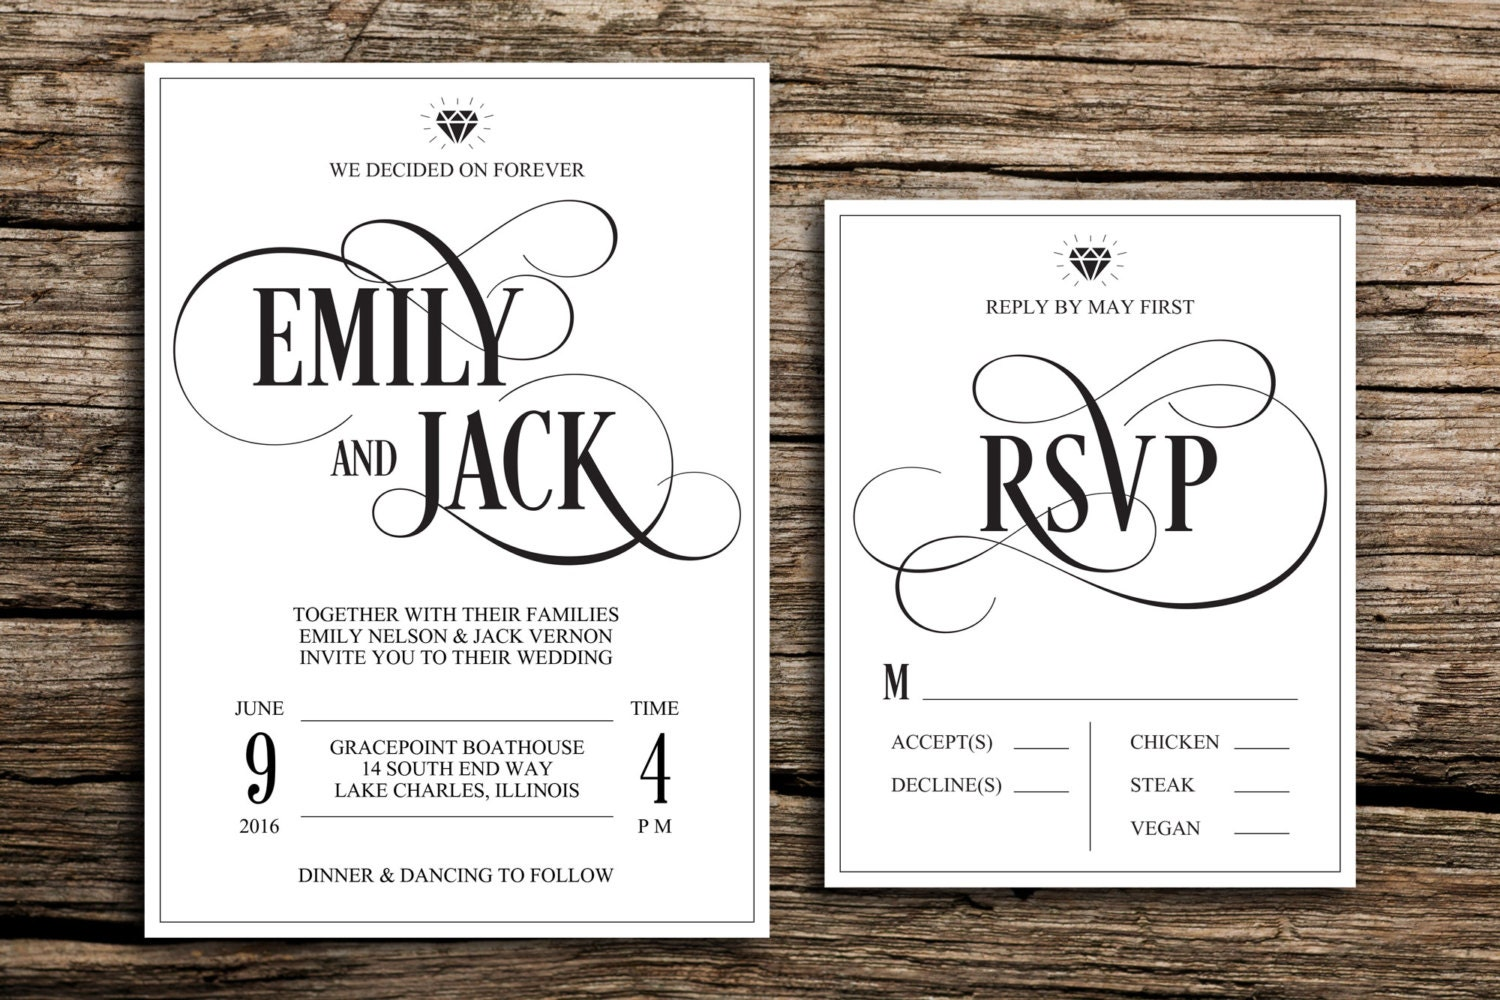 Wedding Invitations With Postcard Response Cards: We Decided On Forever Wedding Invitation And RSVP // Modern